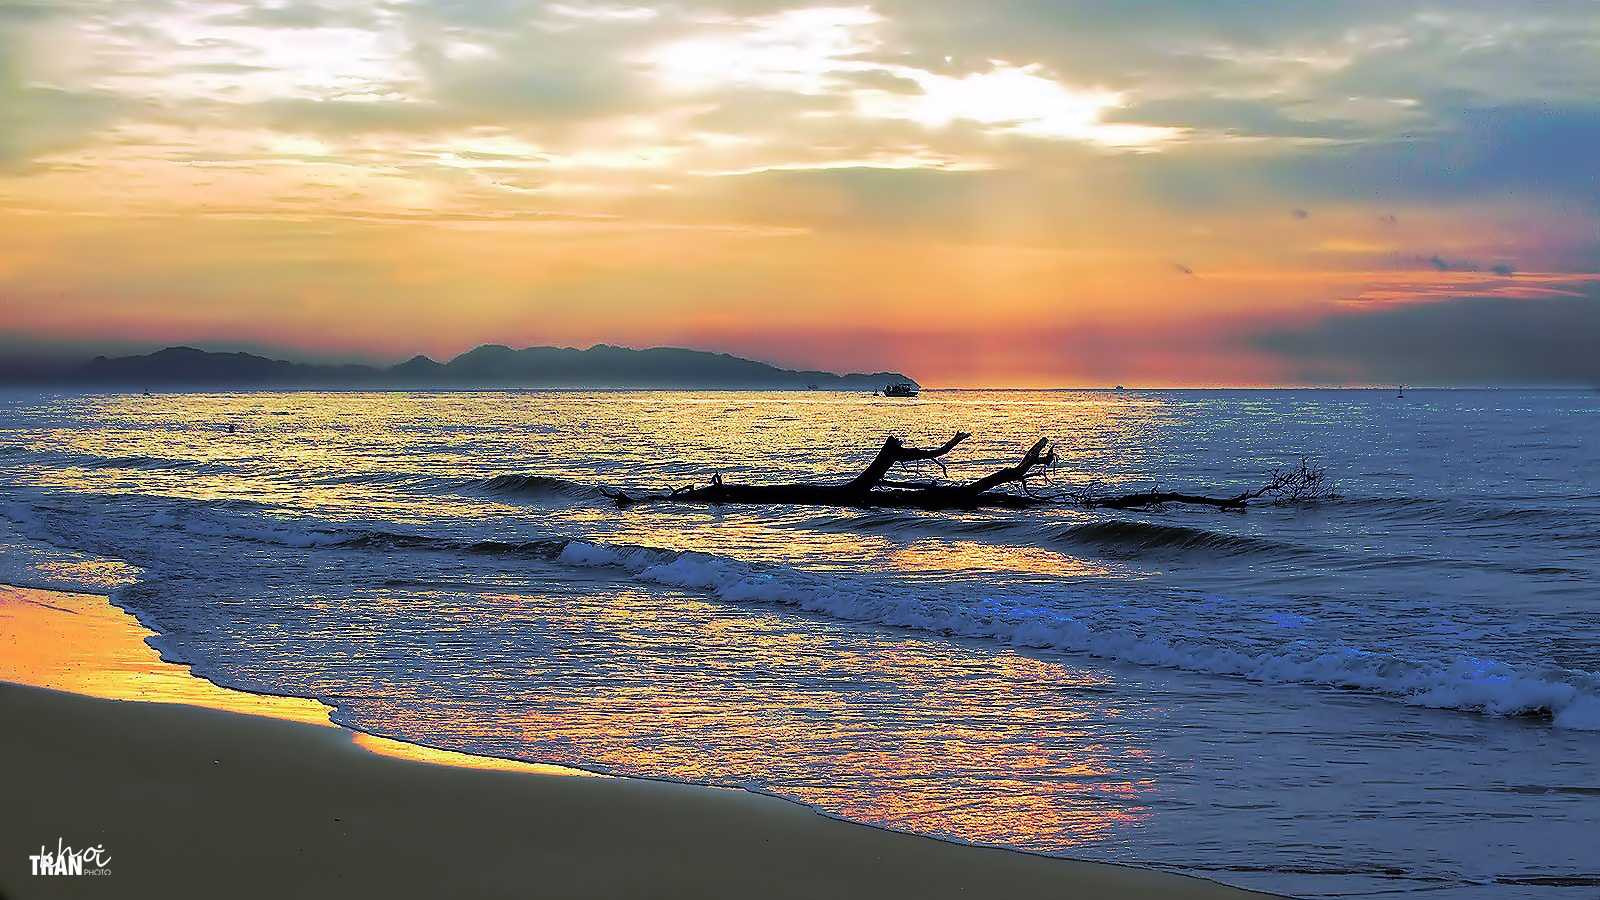 Photograph A new day in Vung Tau by Khoi Tran Duc on 500px